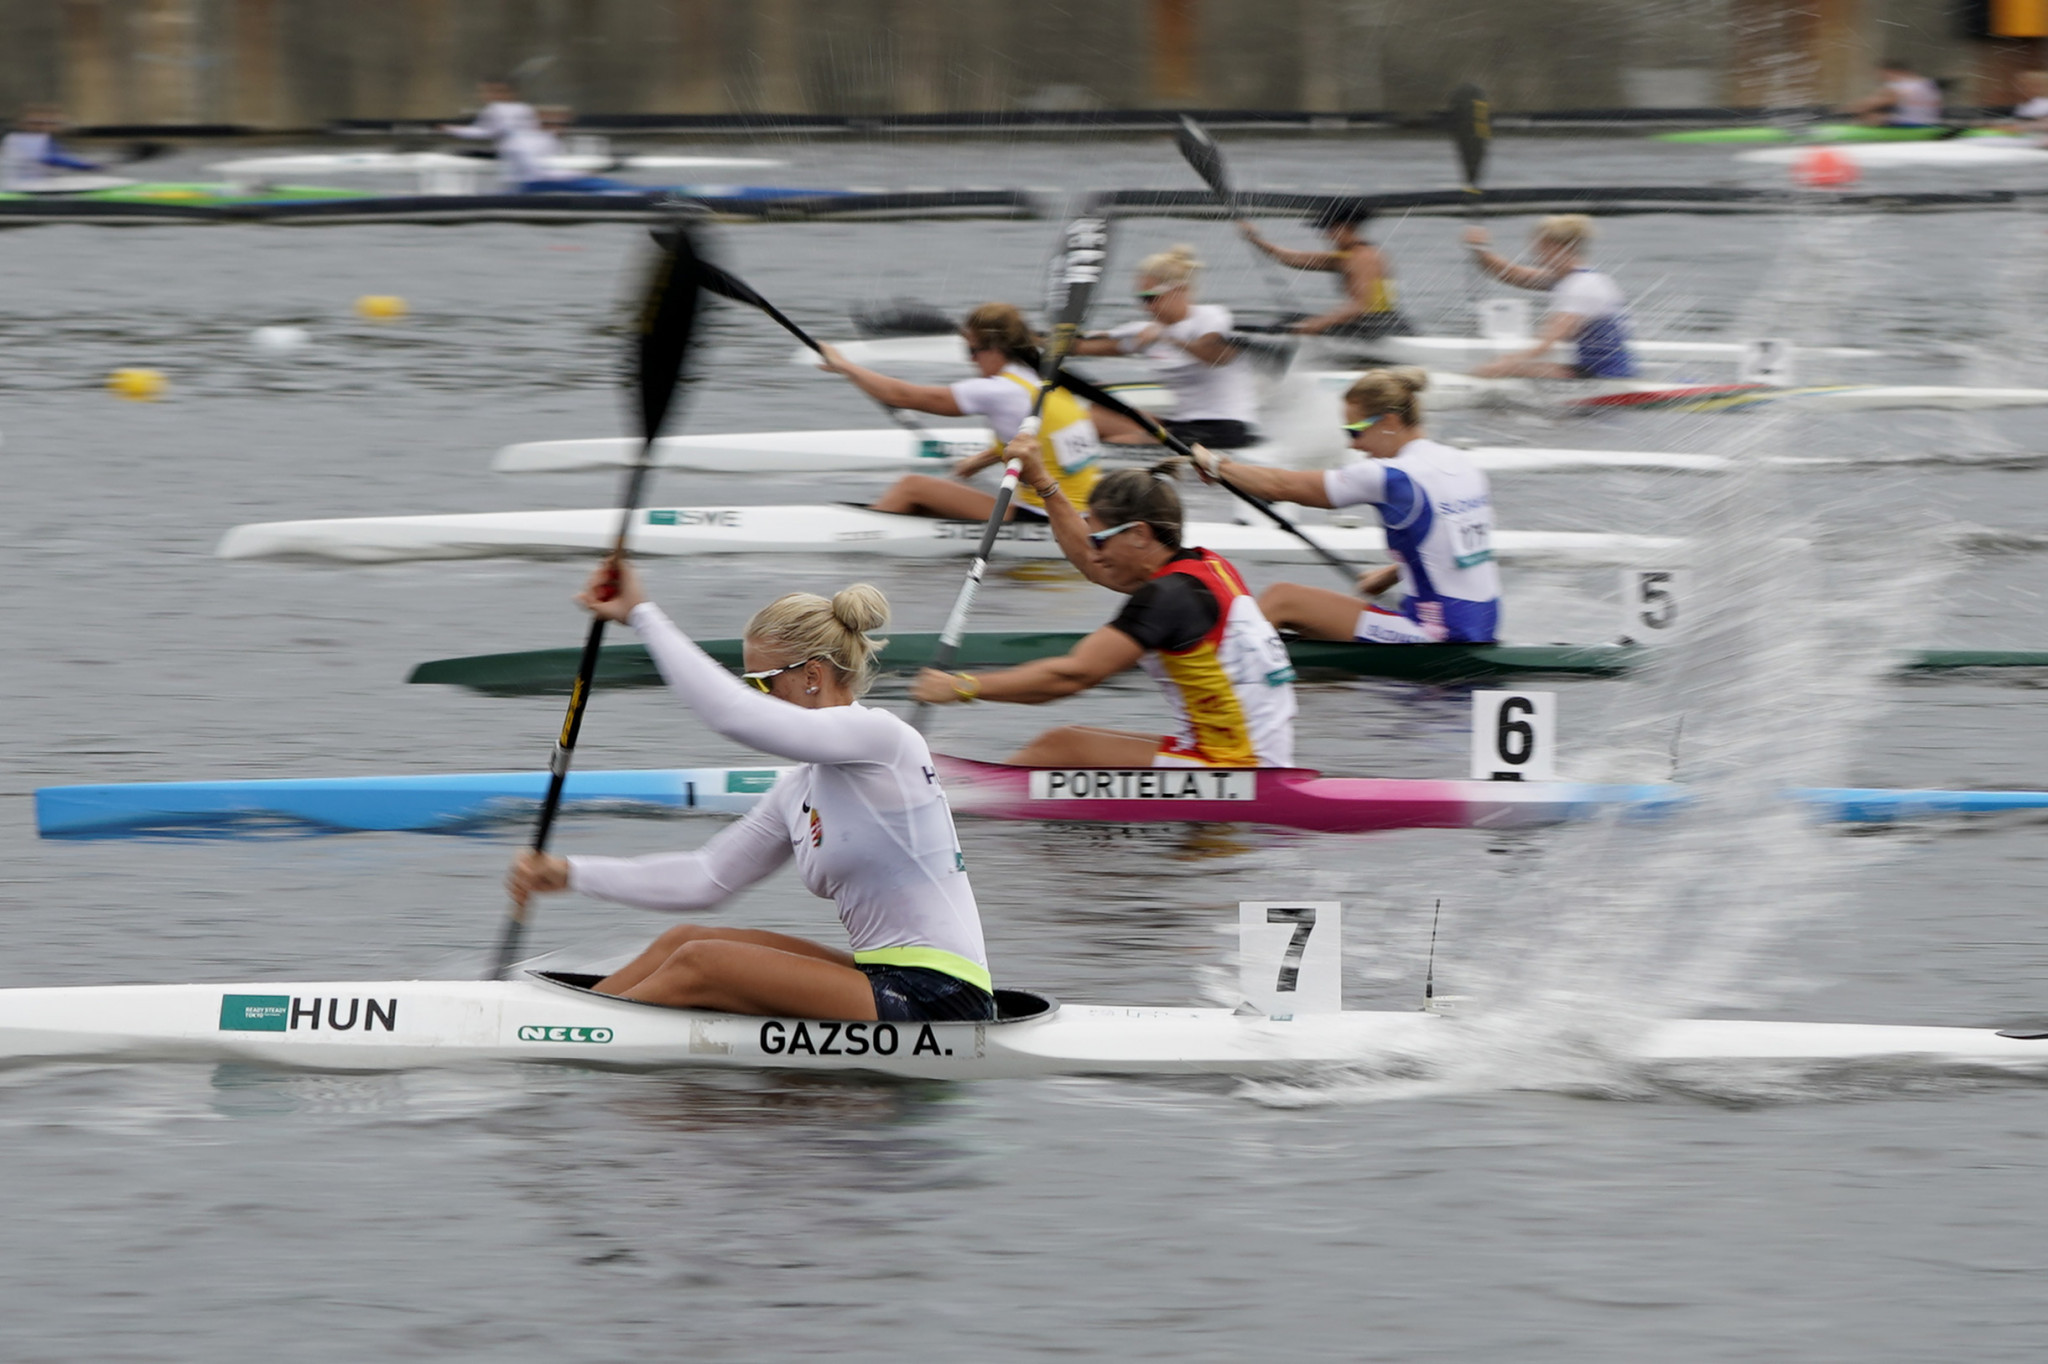 World champions ease into K2 1,000m semi-finals at Tokyo 2020 canoe sprint test event